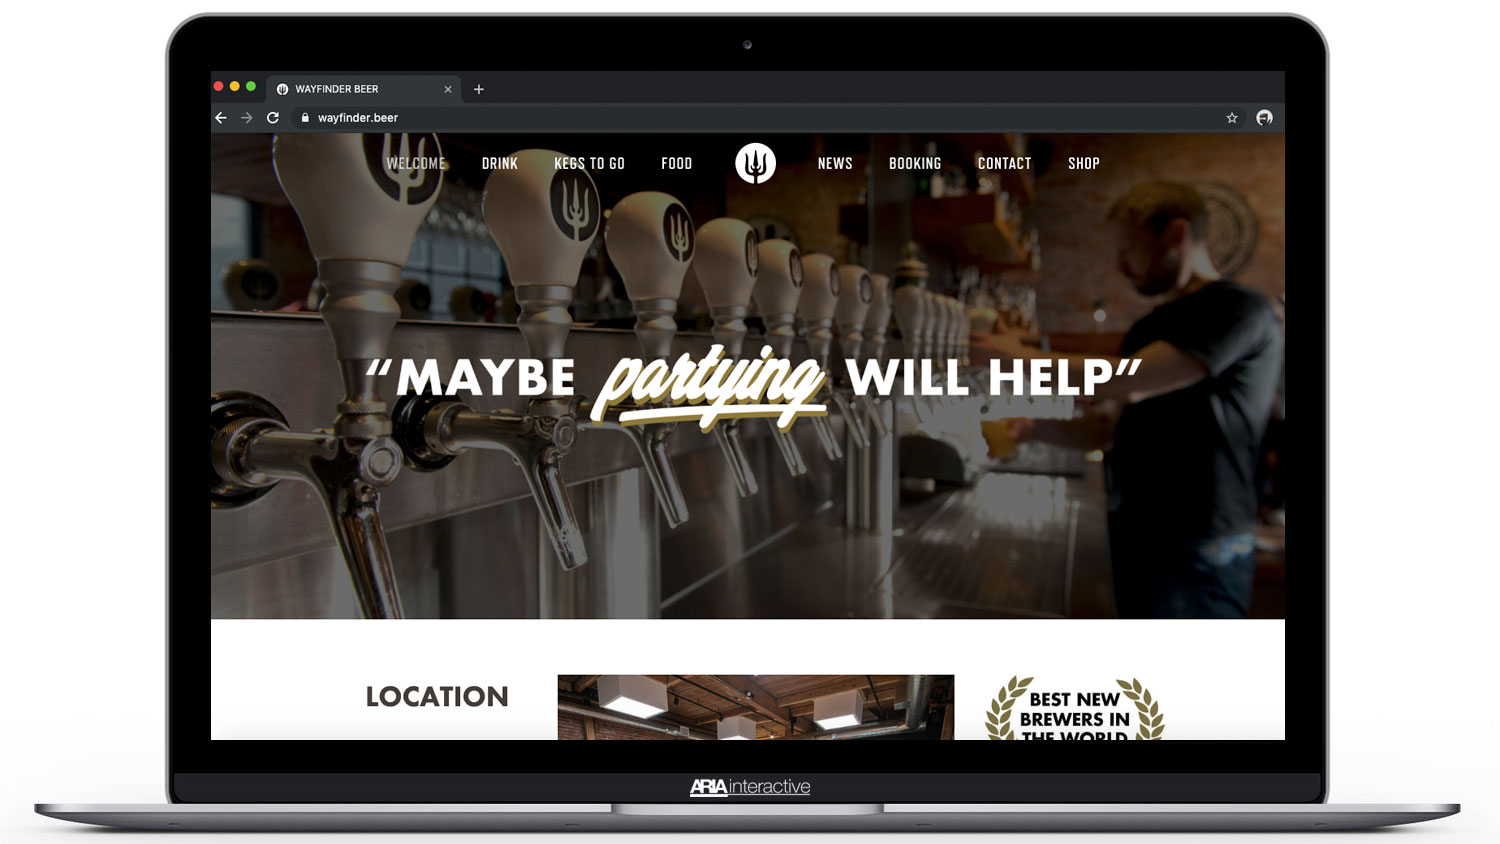 wayfinder-beer-website-aria-interactive.jpg